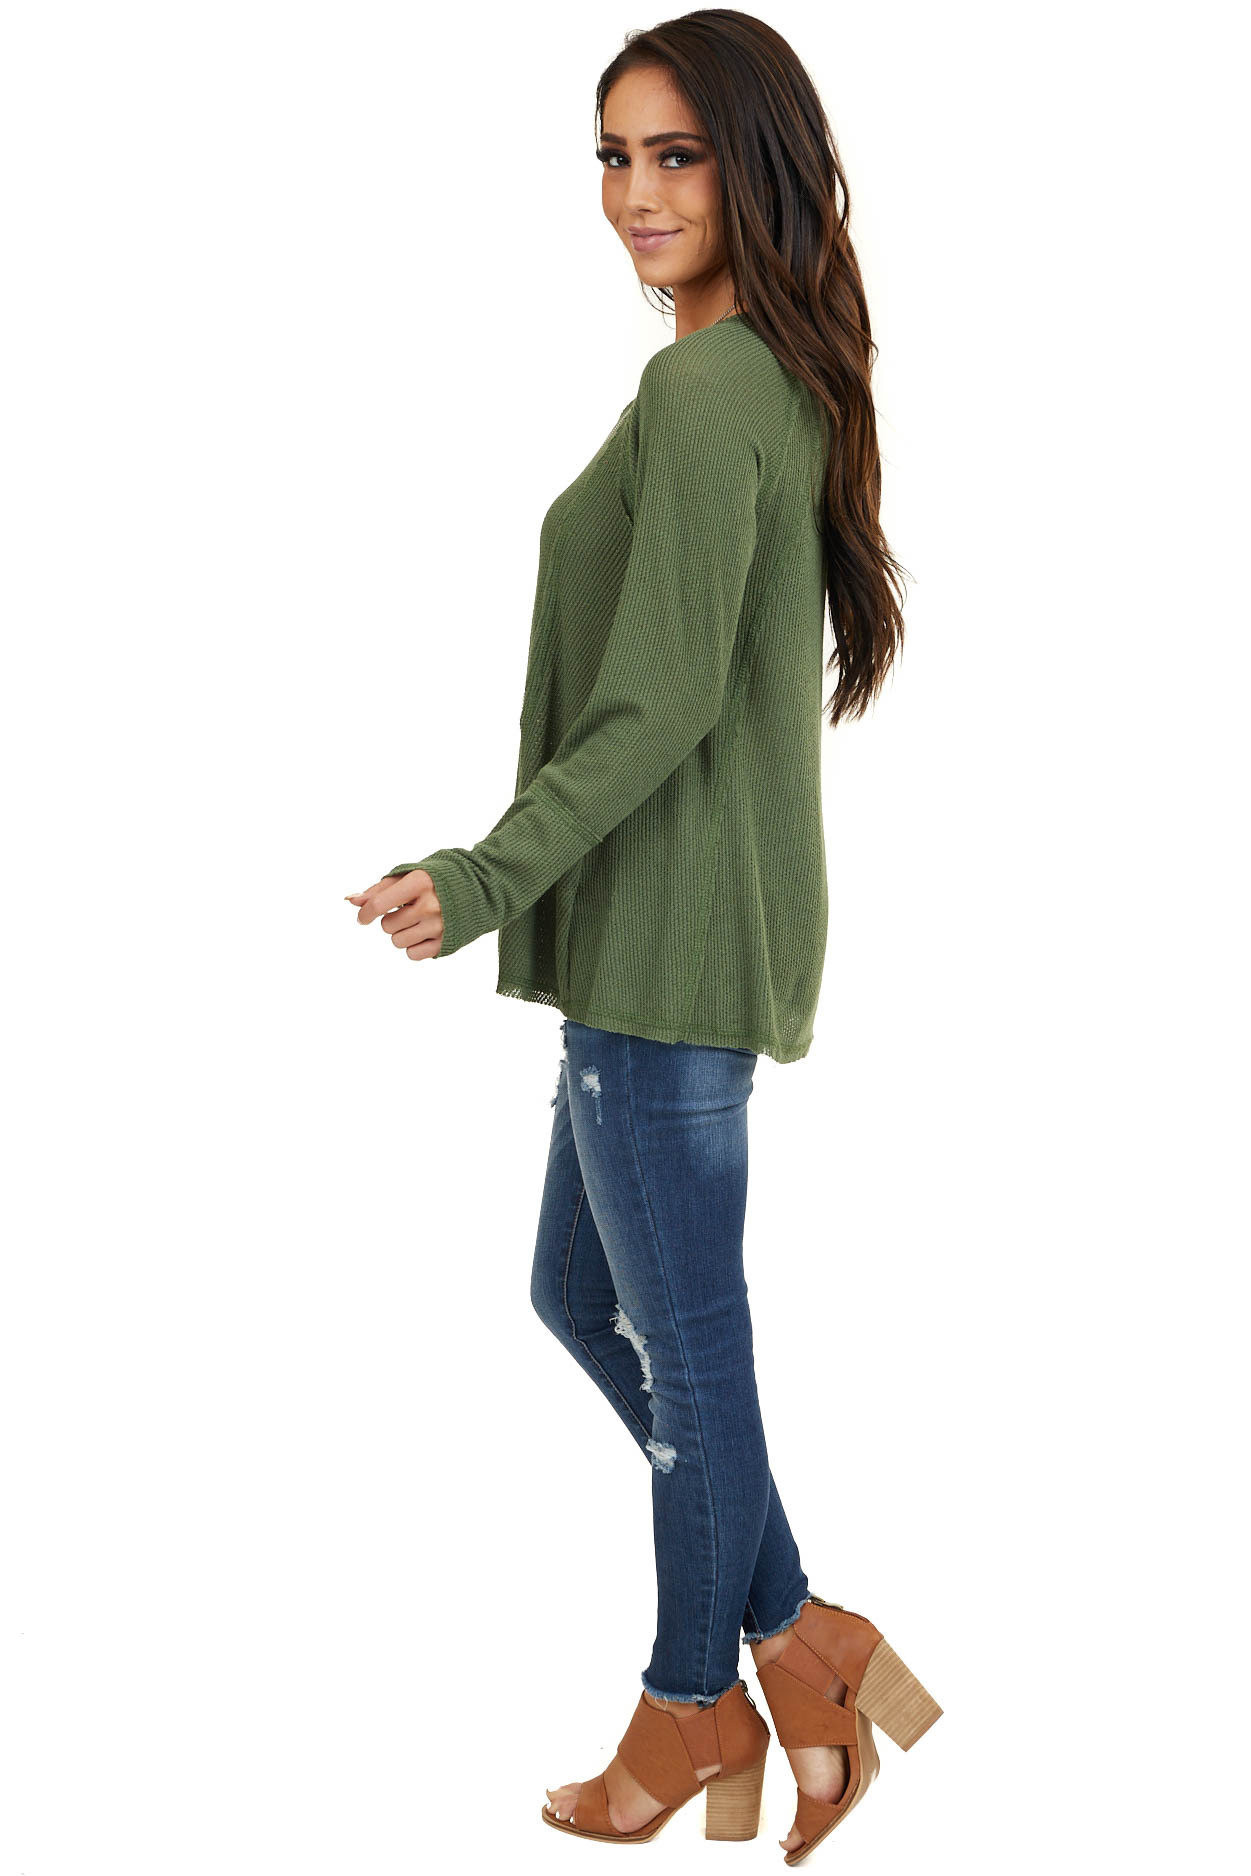 Olive Long Sleeve Knit Top with Raw Hemline Details